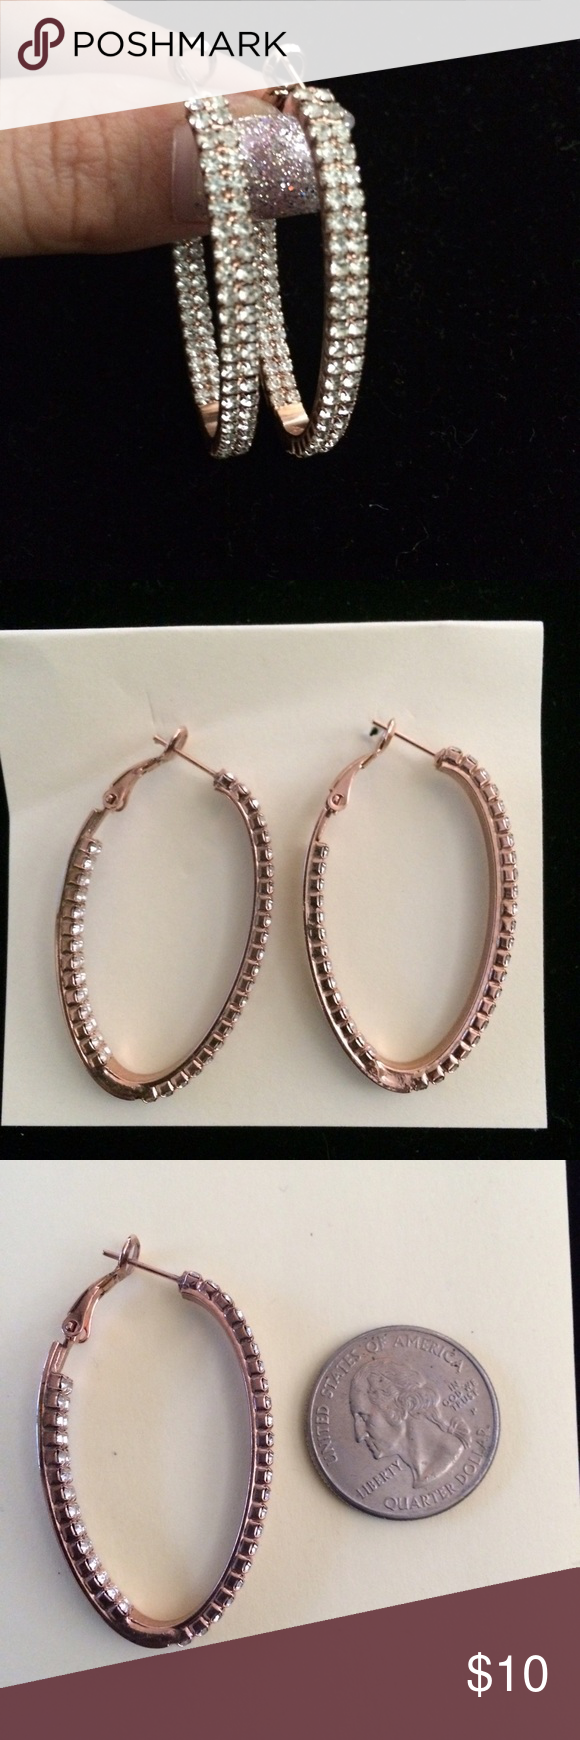 Rose gold colored earrings Beautiful rose gold colored hoop earrings with rinestones. Jewelry Earrings